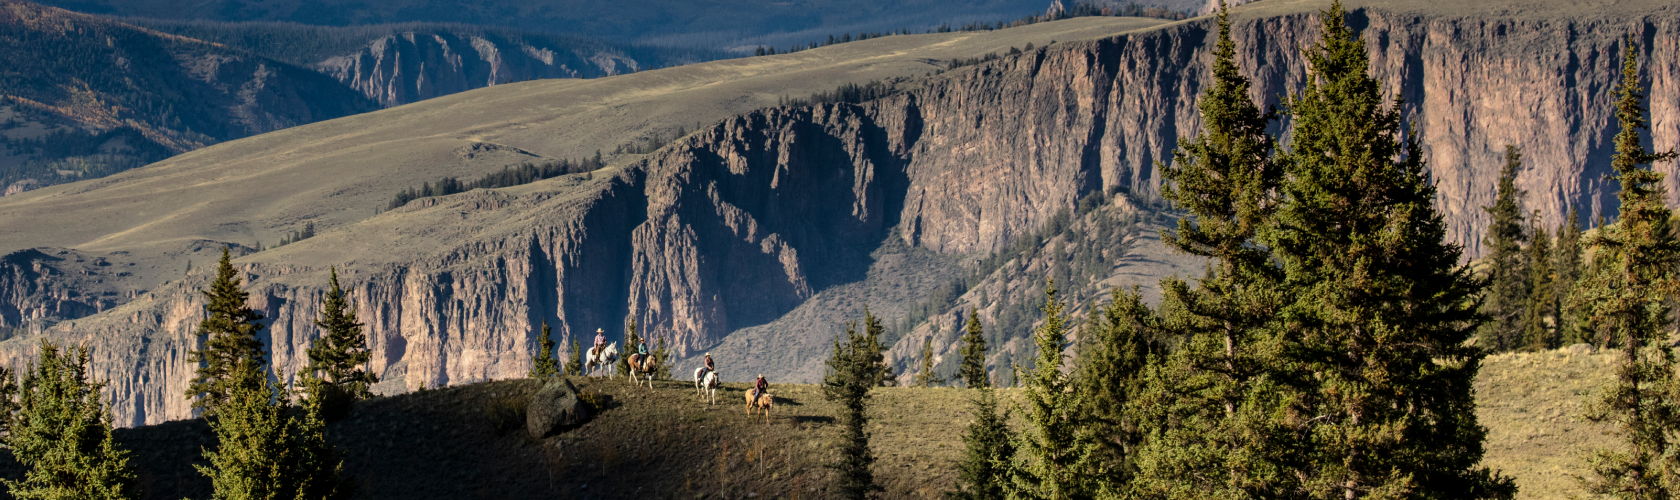 People riding horses near mountains